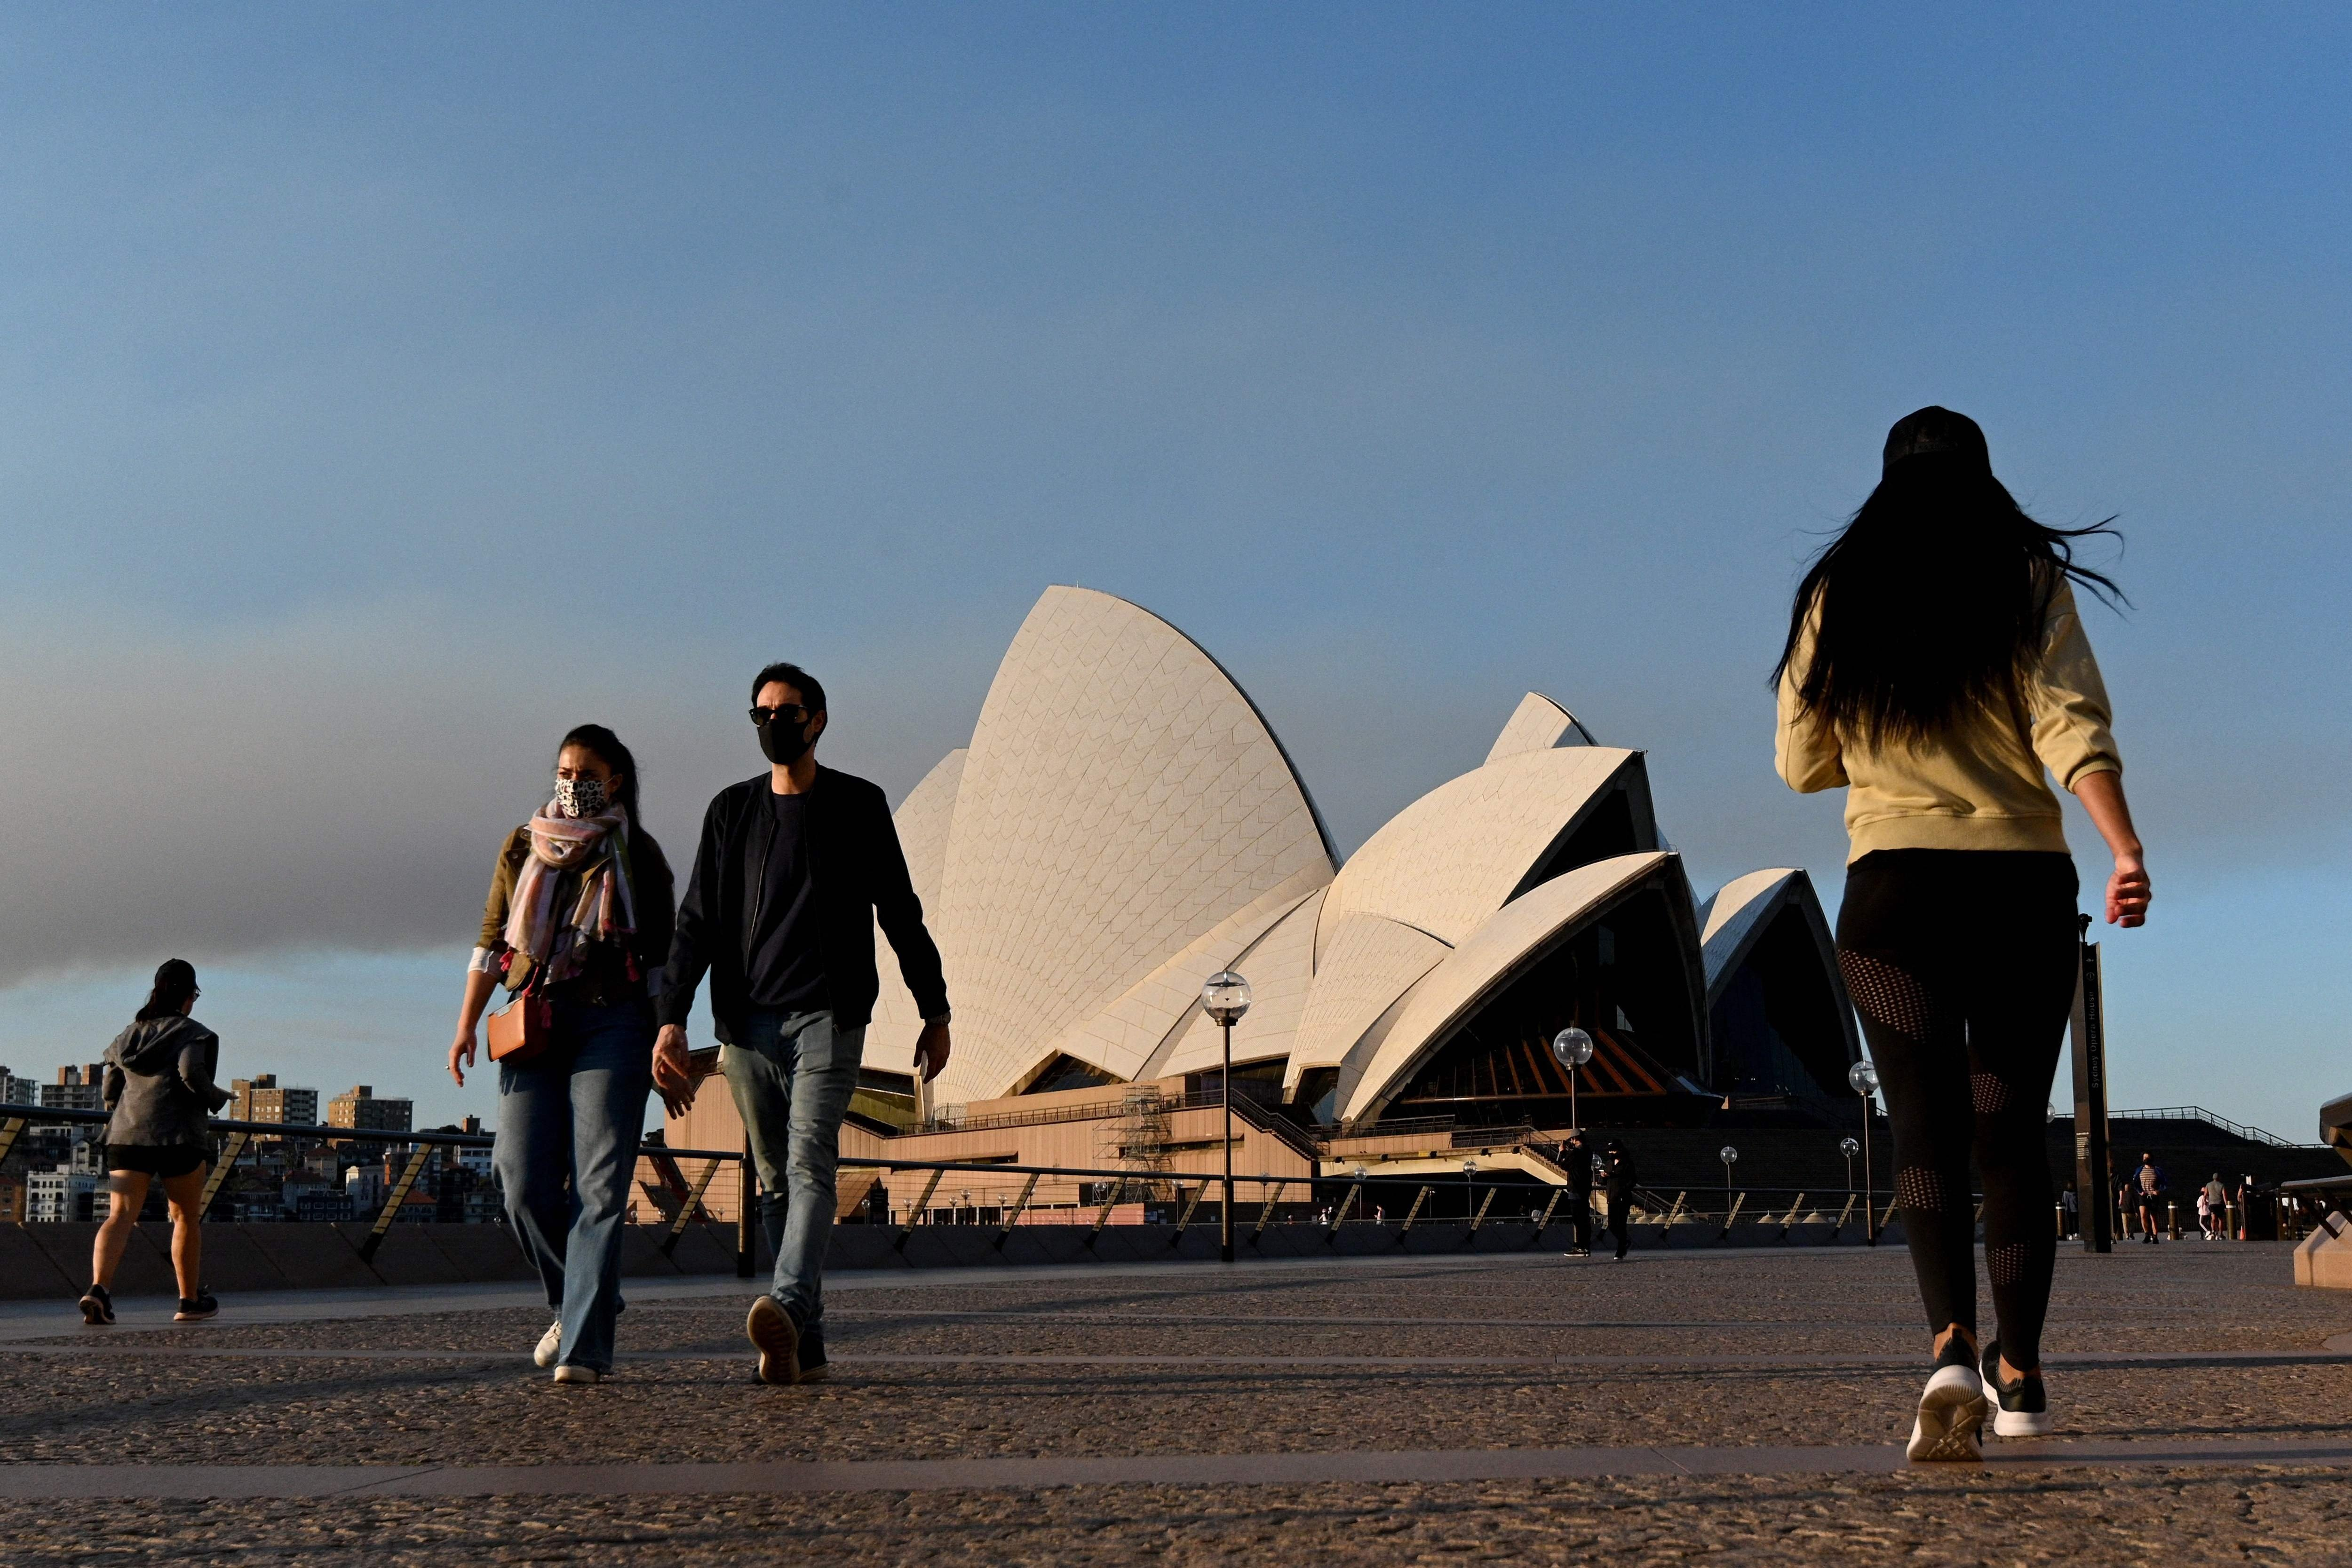 Sydney lockdown fines hiked to $3,700 as Australia faces 'worst' Covid situation